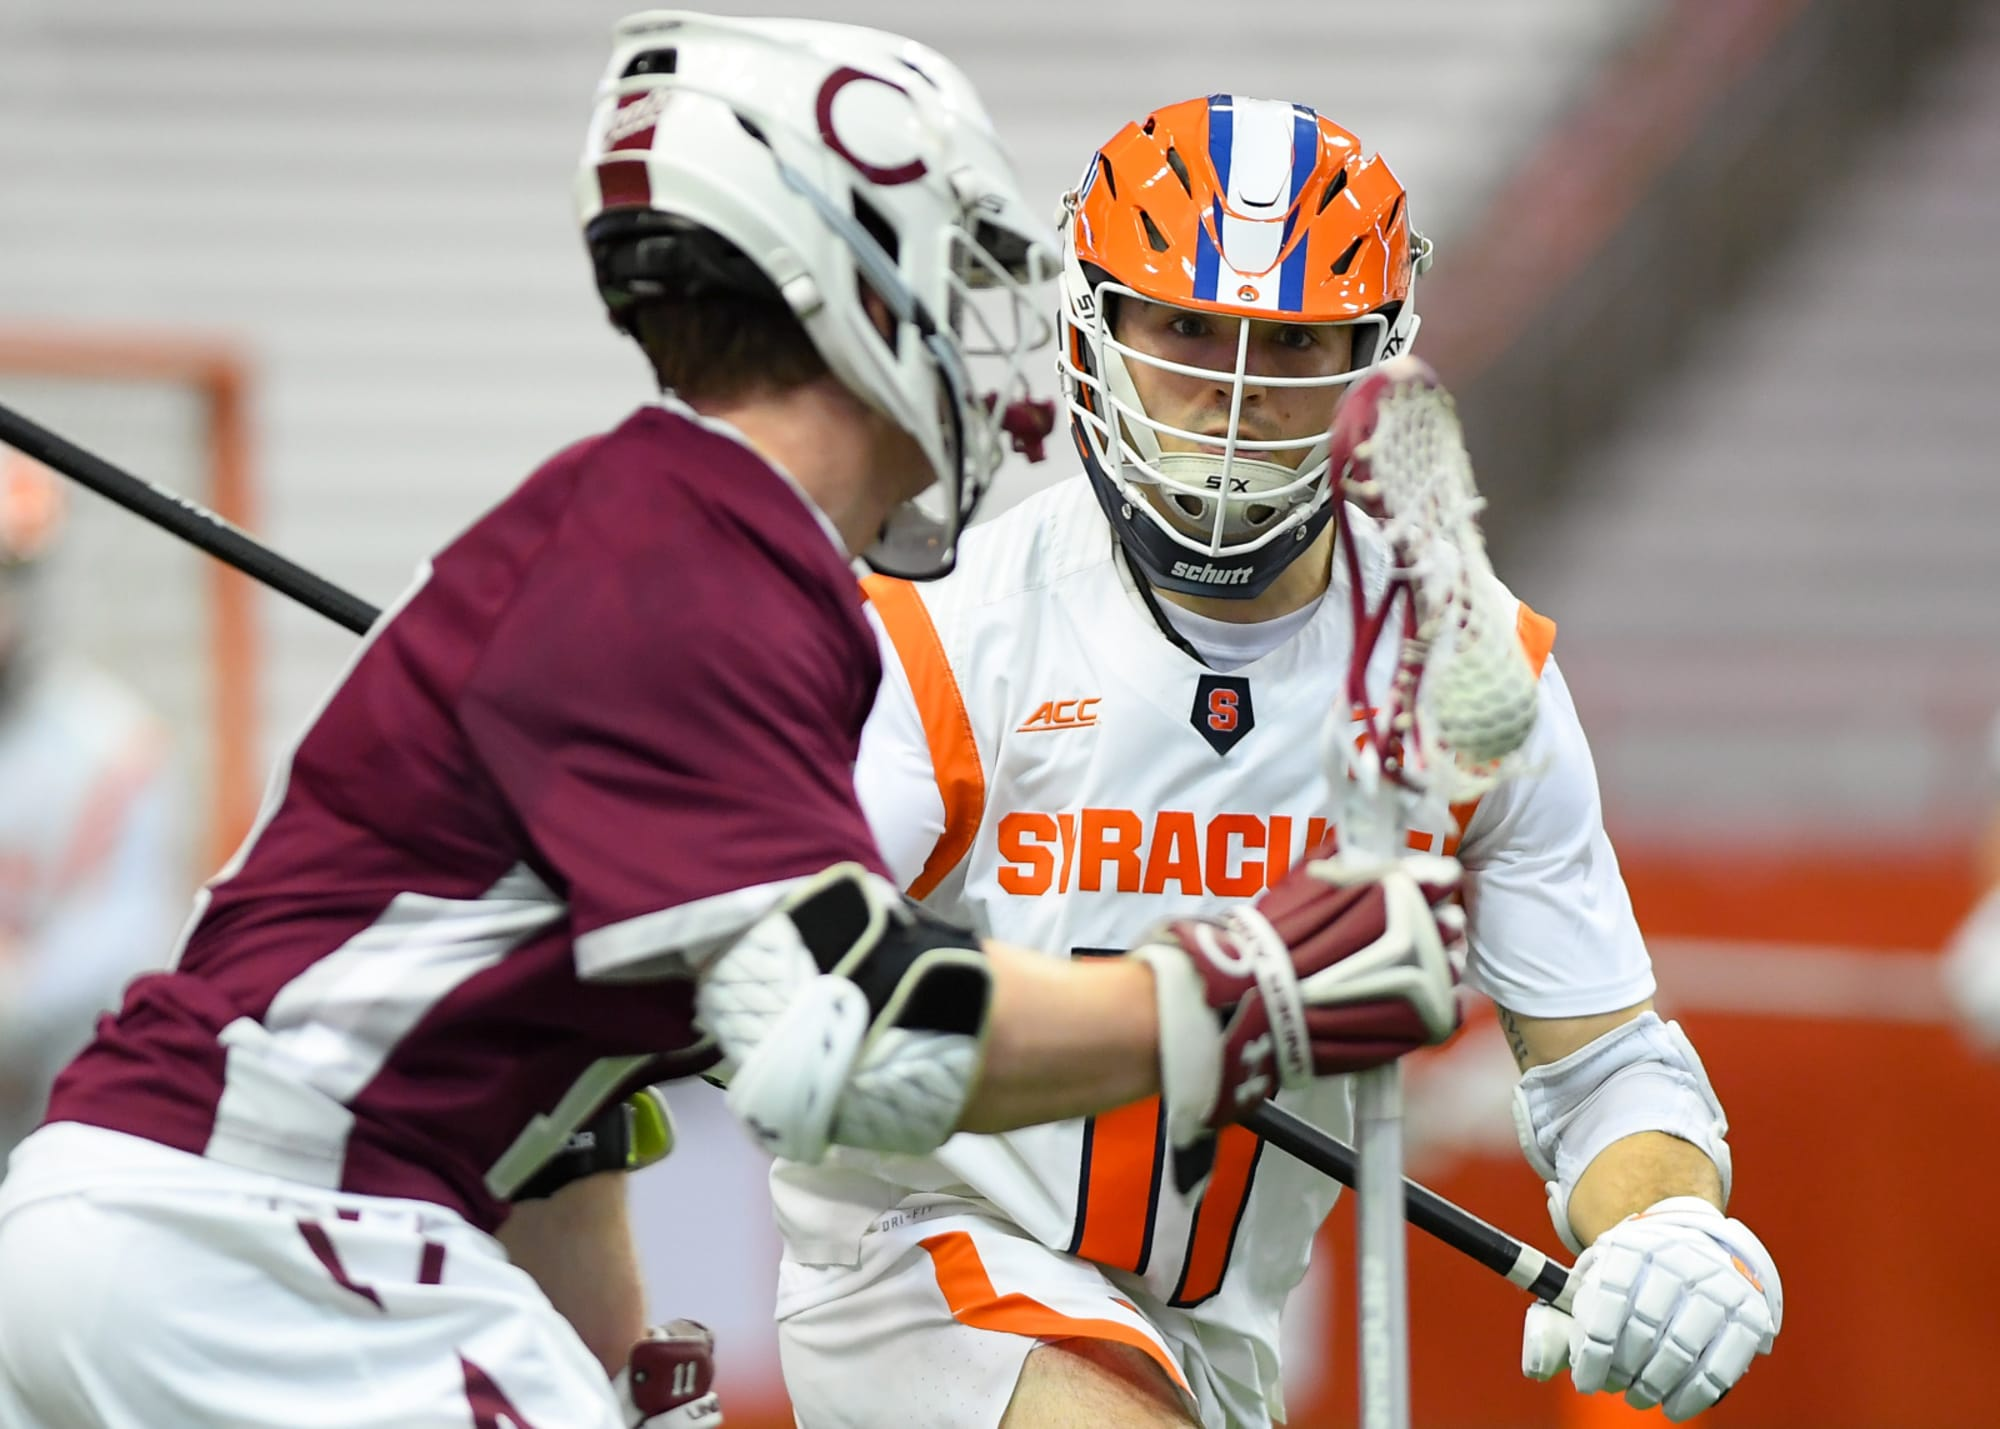 Ten former Syracuse lacrosse stars to suit up in MLL, but not Nick Mellen